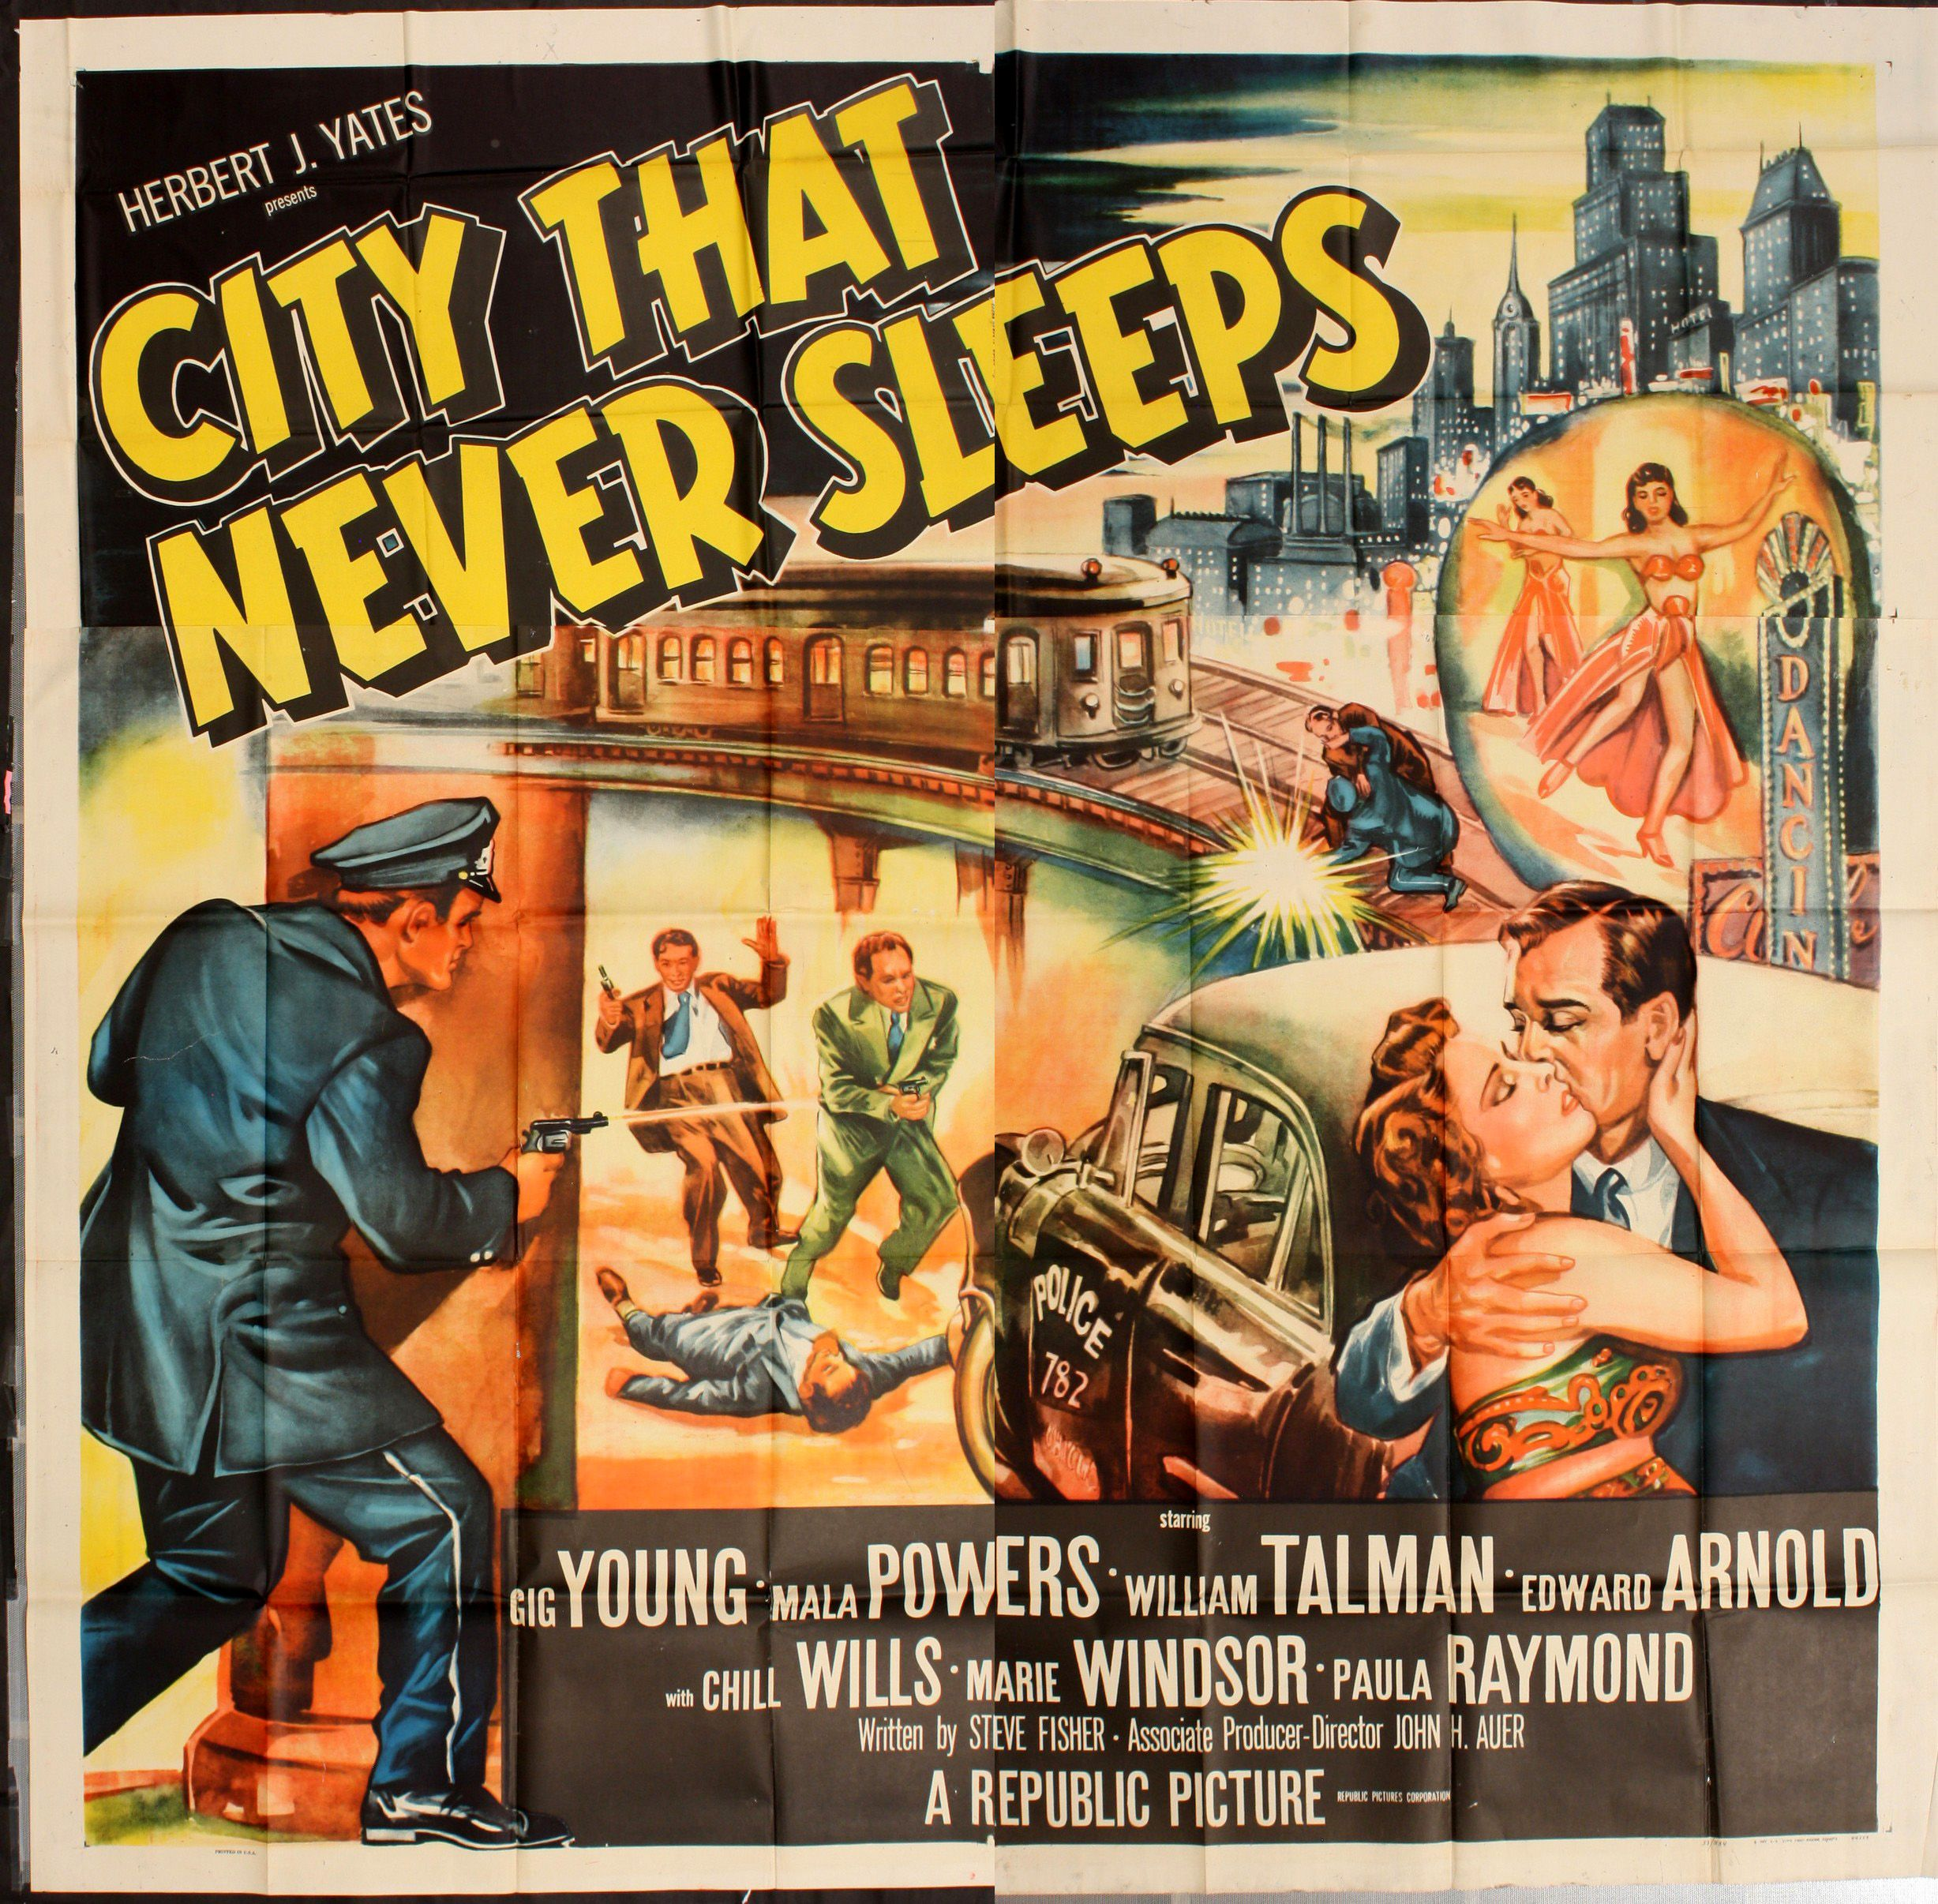 City That Never Sleeps (1953) | Classic movie posters, Republic ...